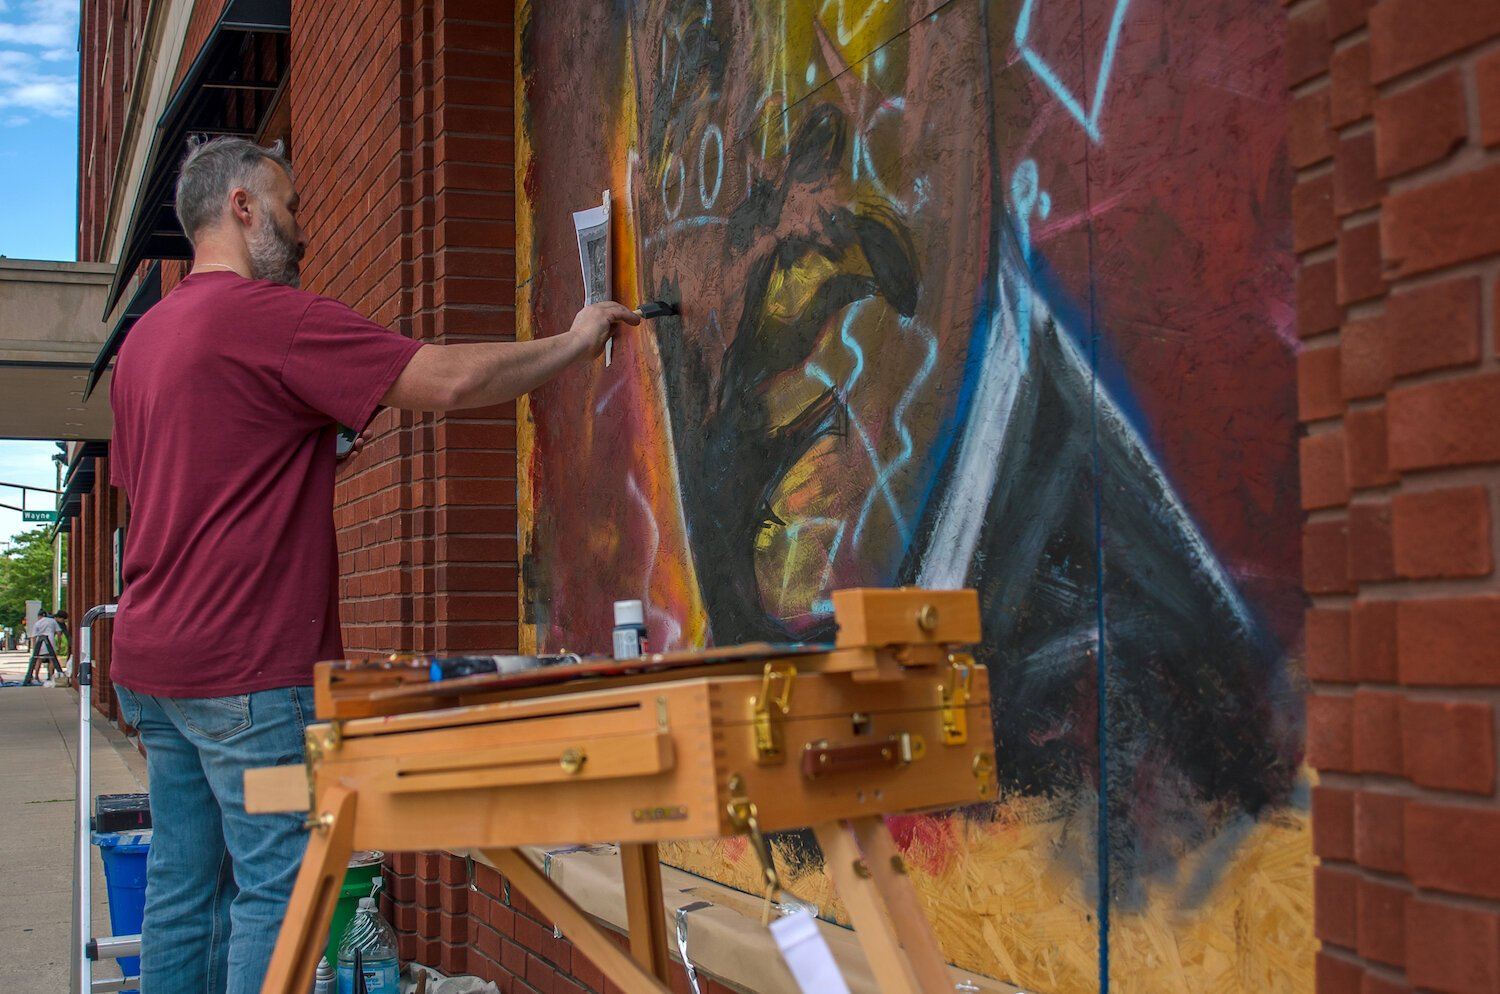 Jeff Pilkinton paints a mural of Mt. Luther King Jr. in downtown Fort Wayne.